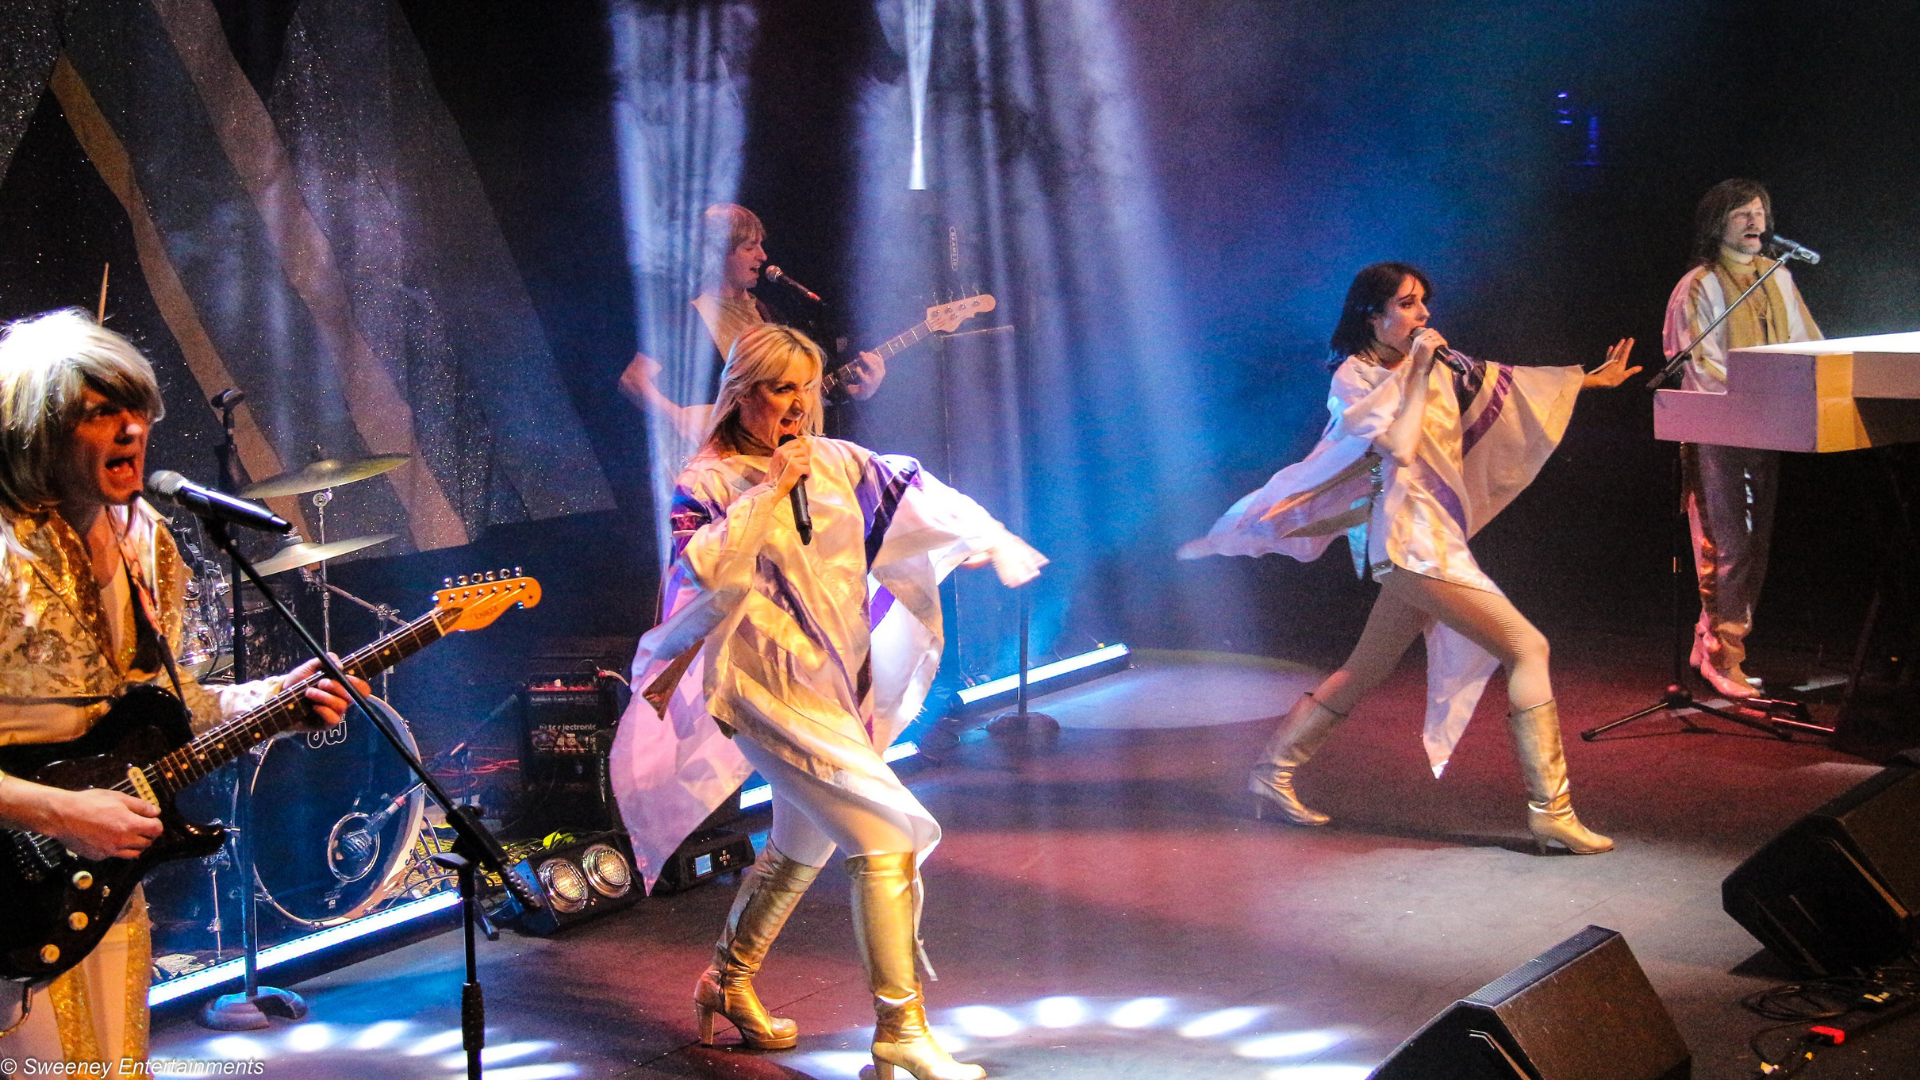 ABBA tribute band on stage singing